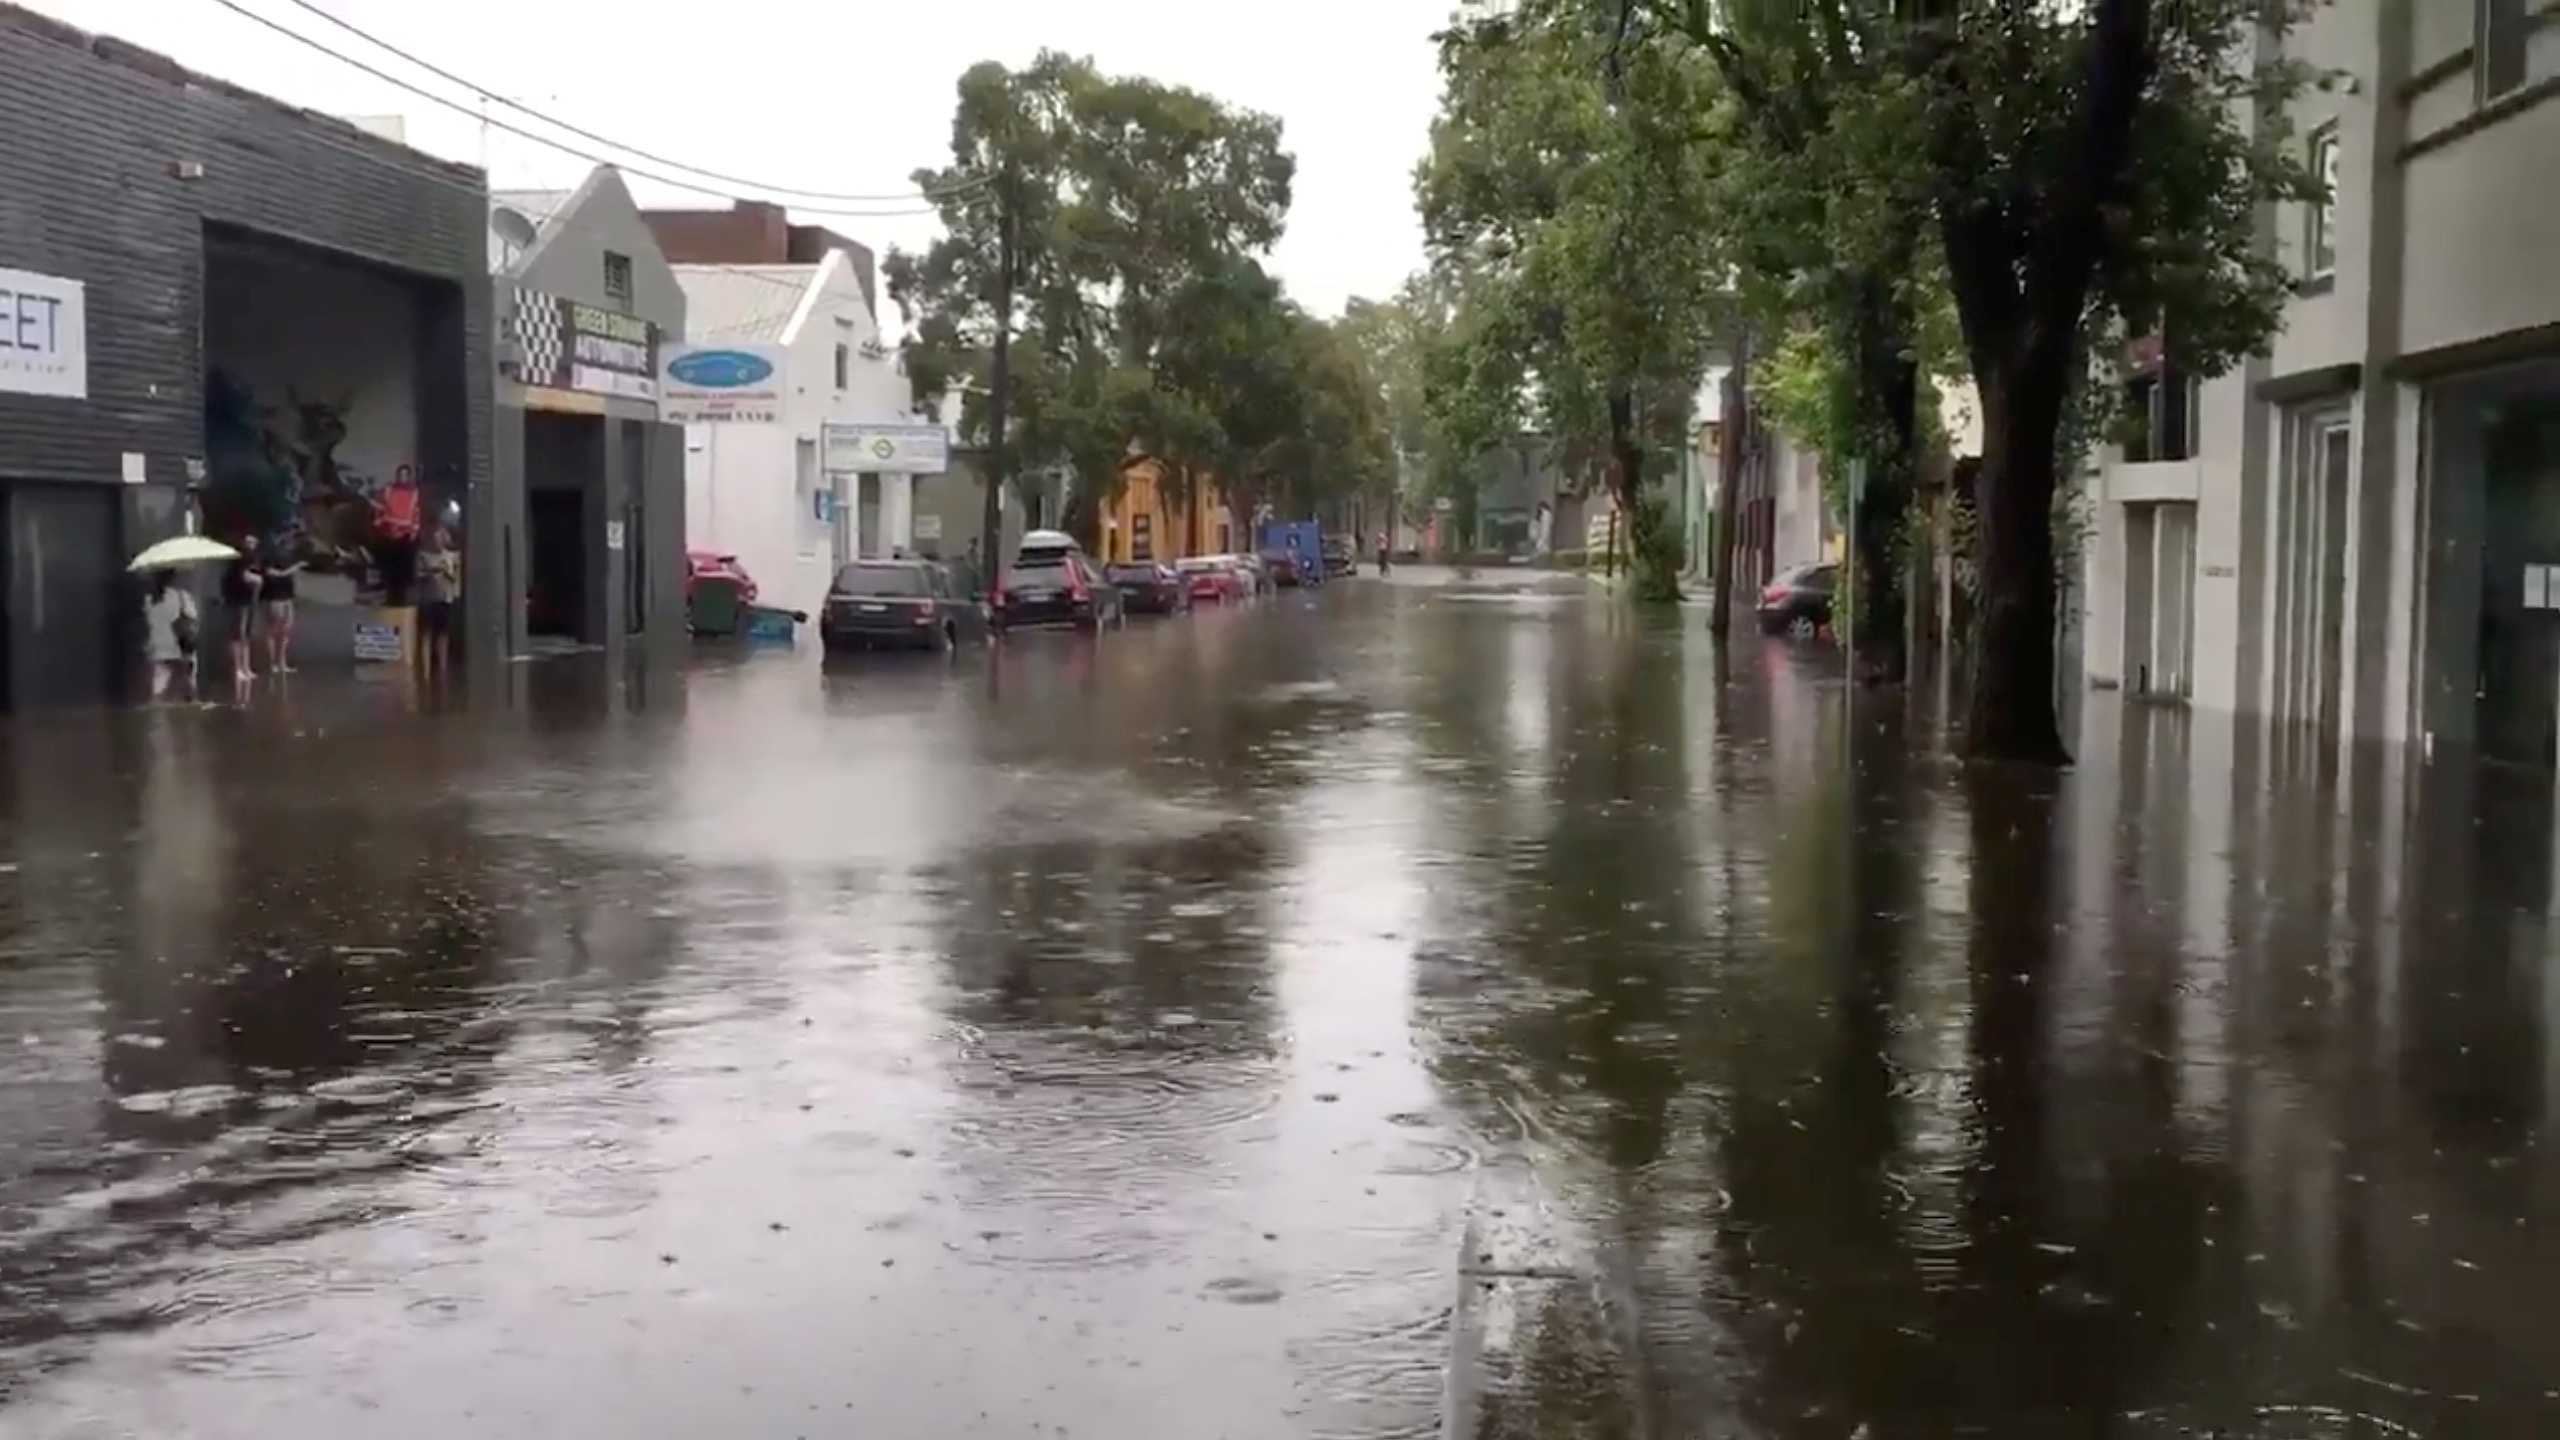 A flooded street in Sydney, New South Wales, Australia November 28, 2018, in this still image taken from a video obtained from social media. @DeeCee451/via REUTERS